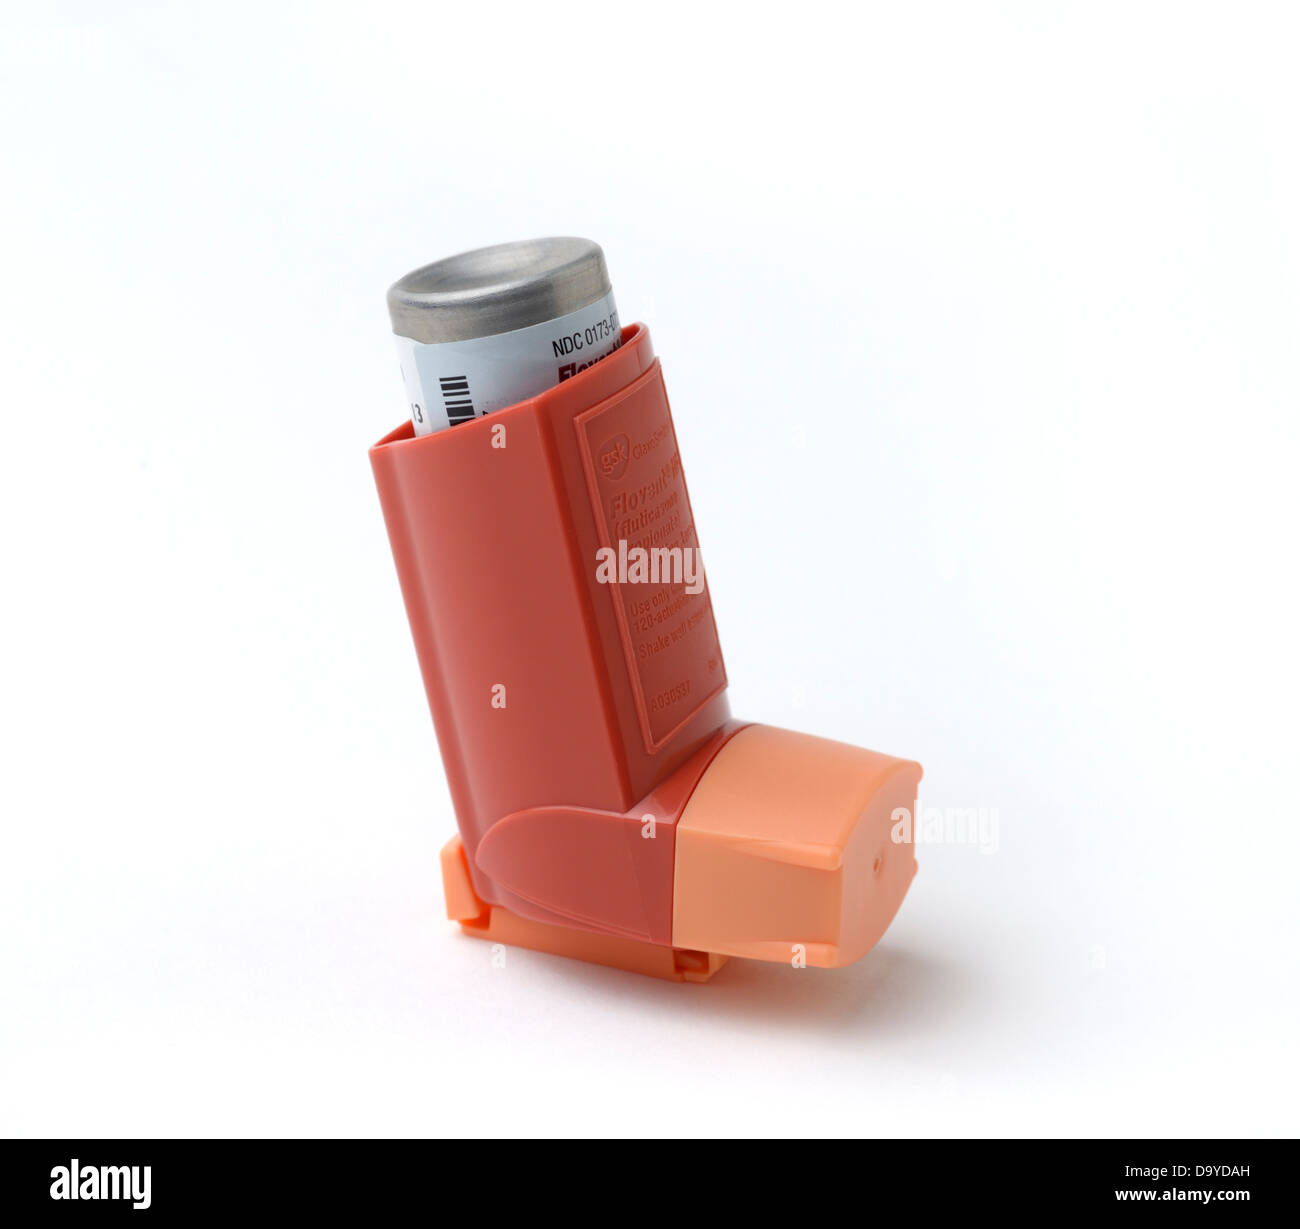 Inhaler for metered doses of aerosol medications for asthma, COPD etc - Stock Image